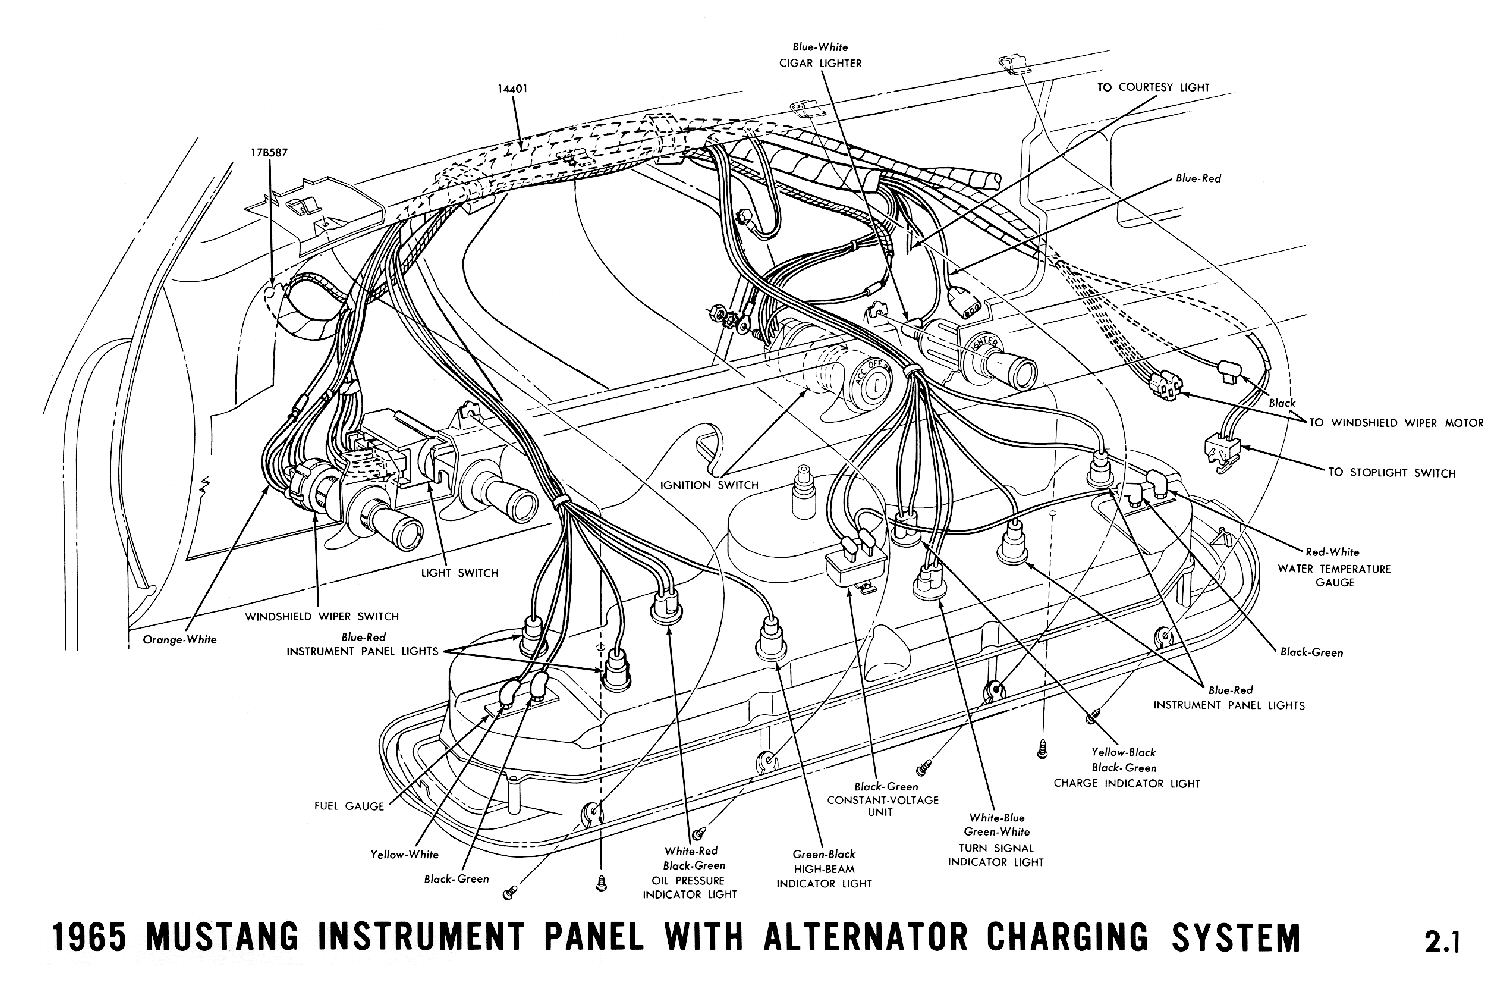 1965a 1965 mustang wiring diagrams average joe restoration 1965 mustang complete wiring harness at suagrazia.org